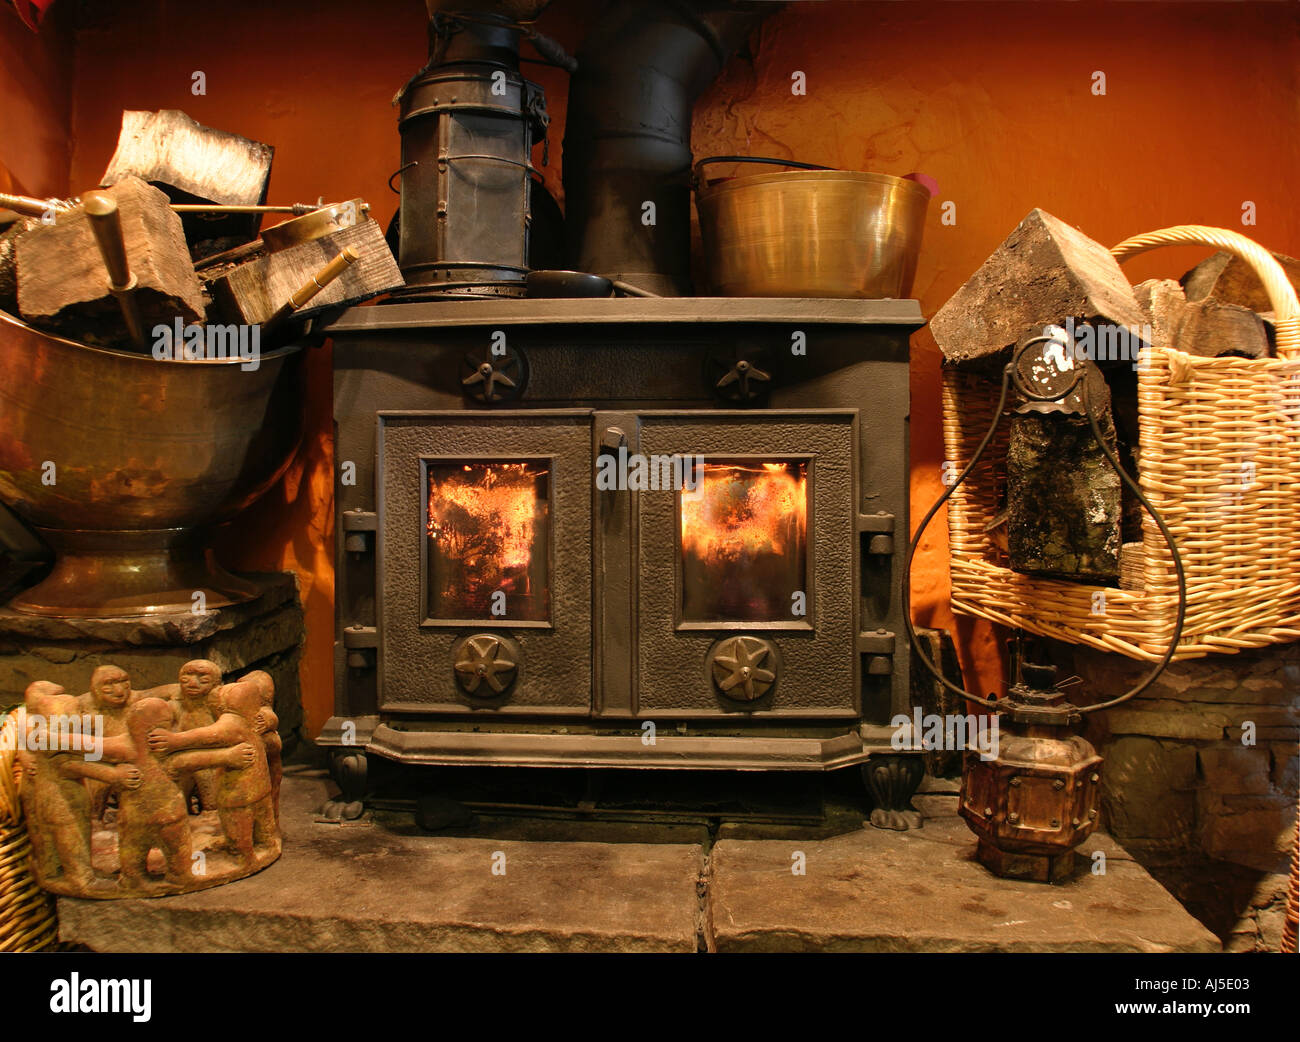 Welcome Home. Warmth and comfort with a wood burning stove - Stock Image